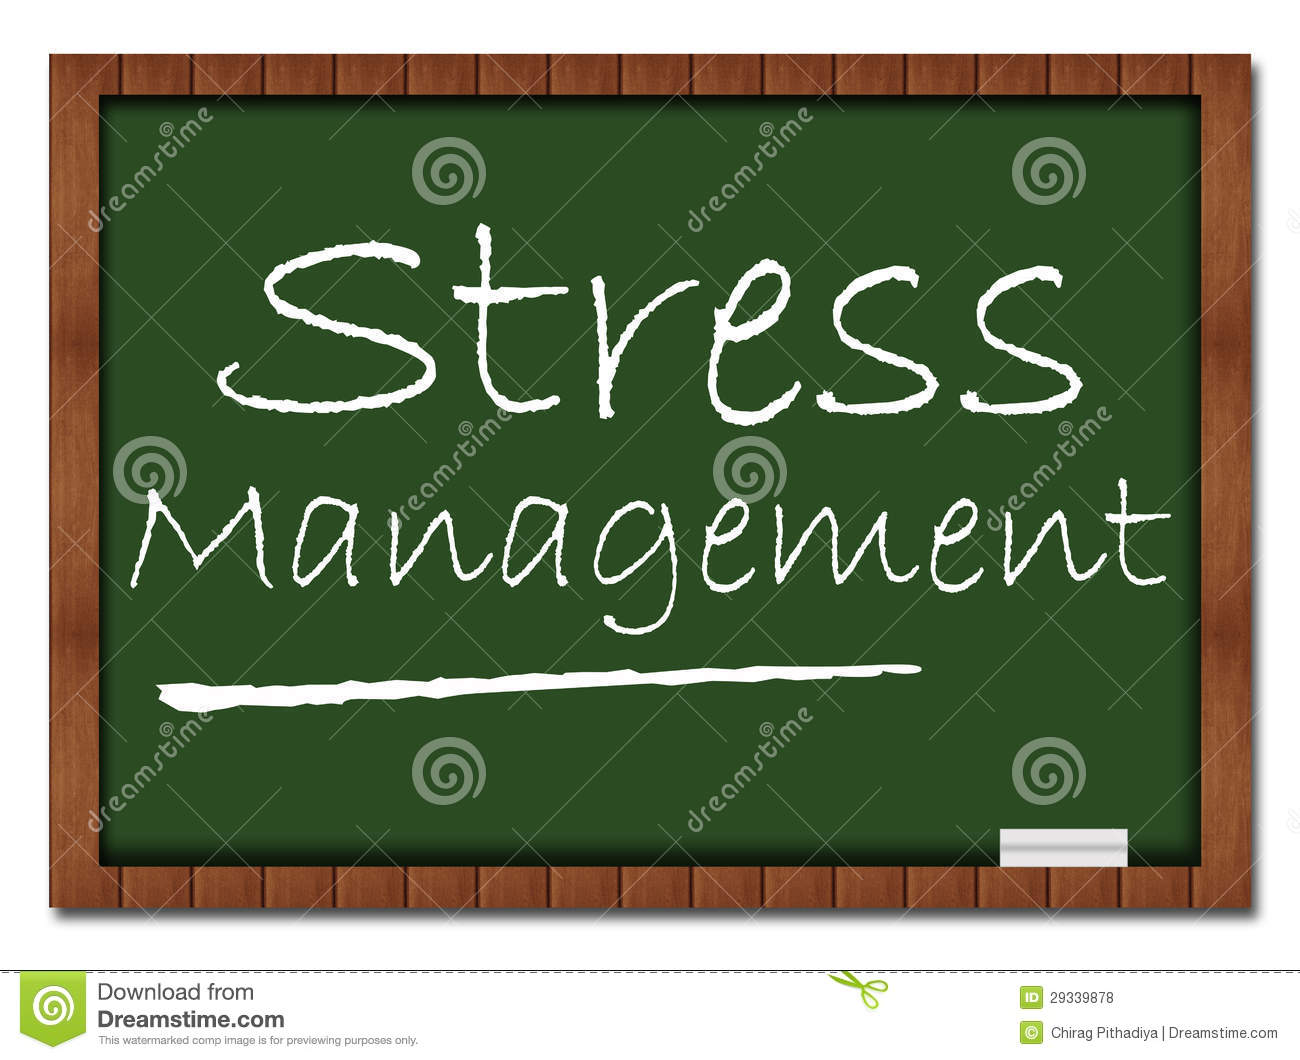 Stress Management   Classroom Board Royalty Free Stock Photos   Image